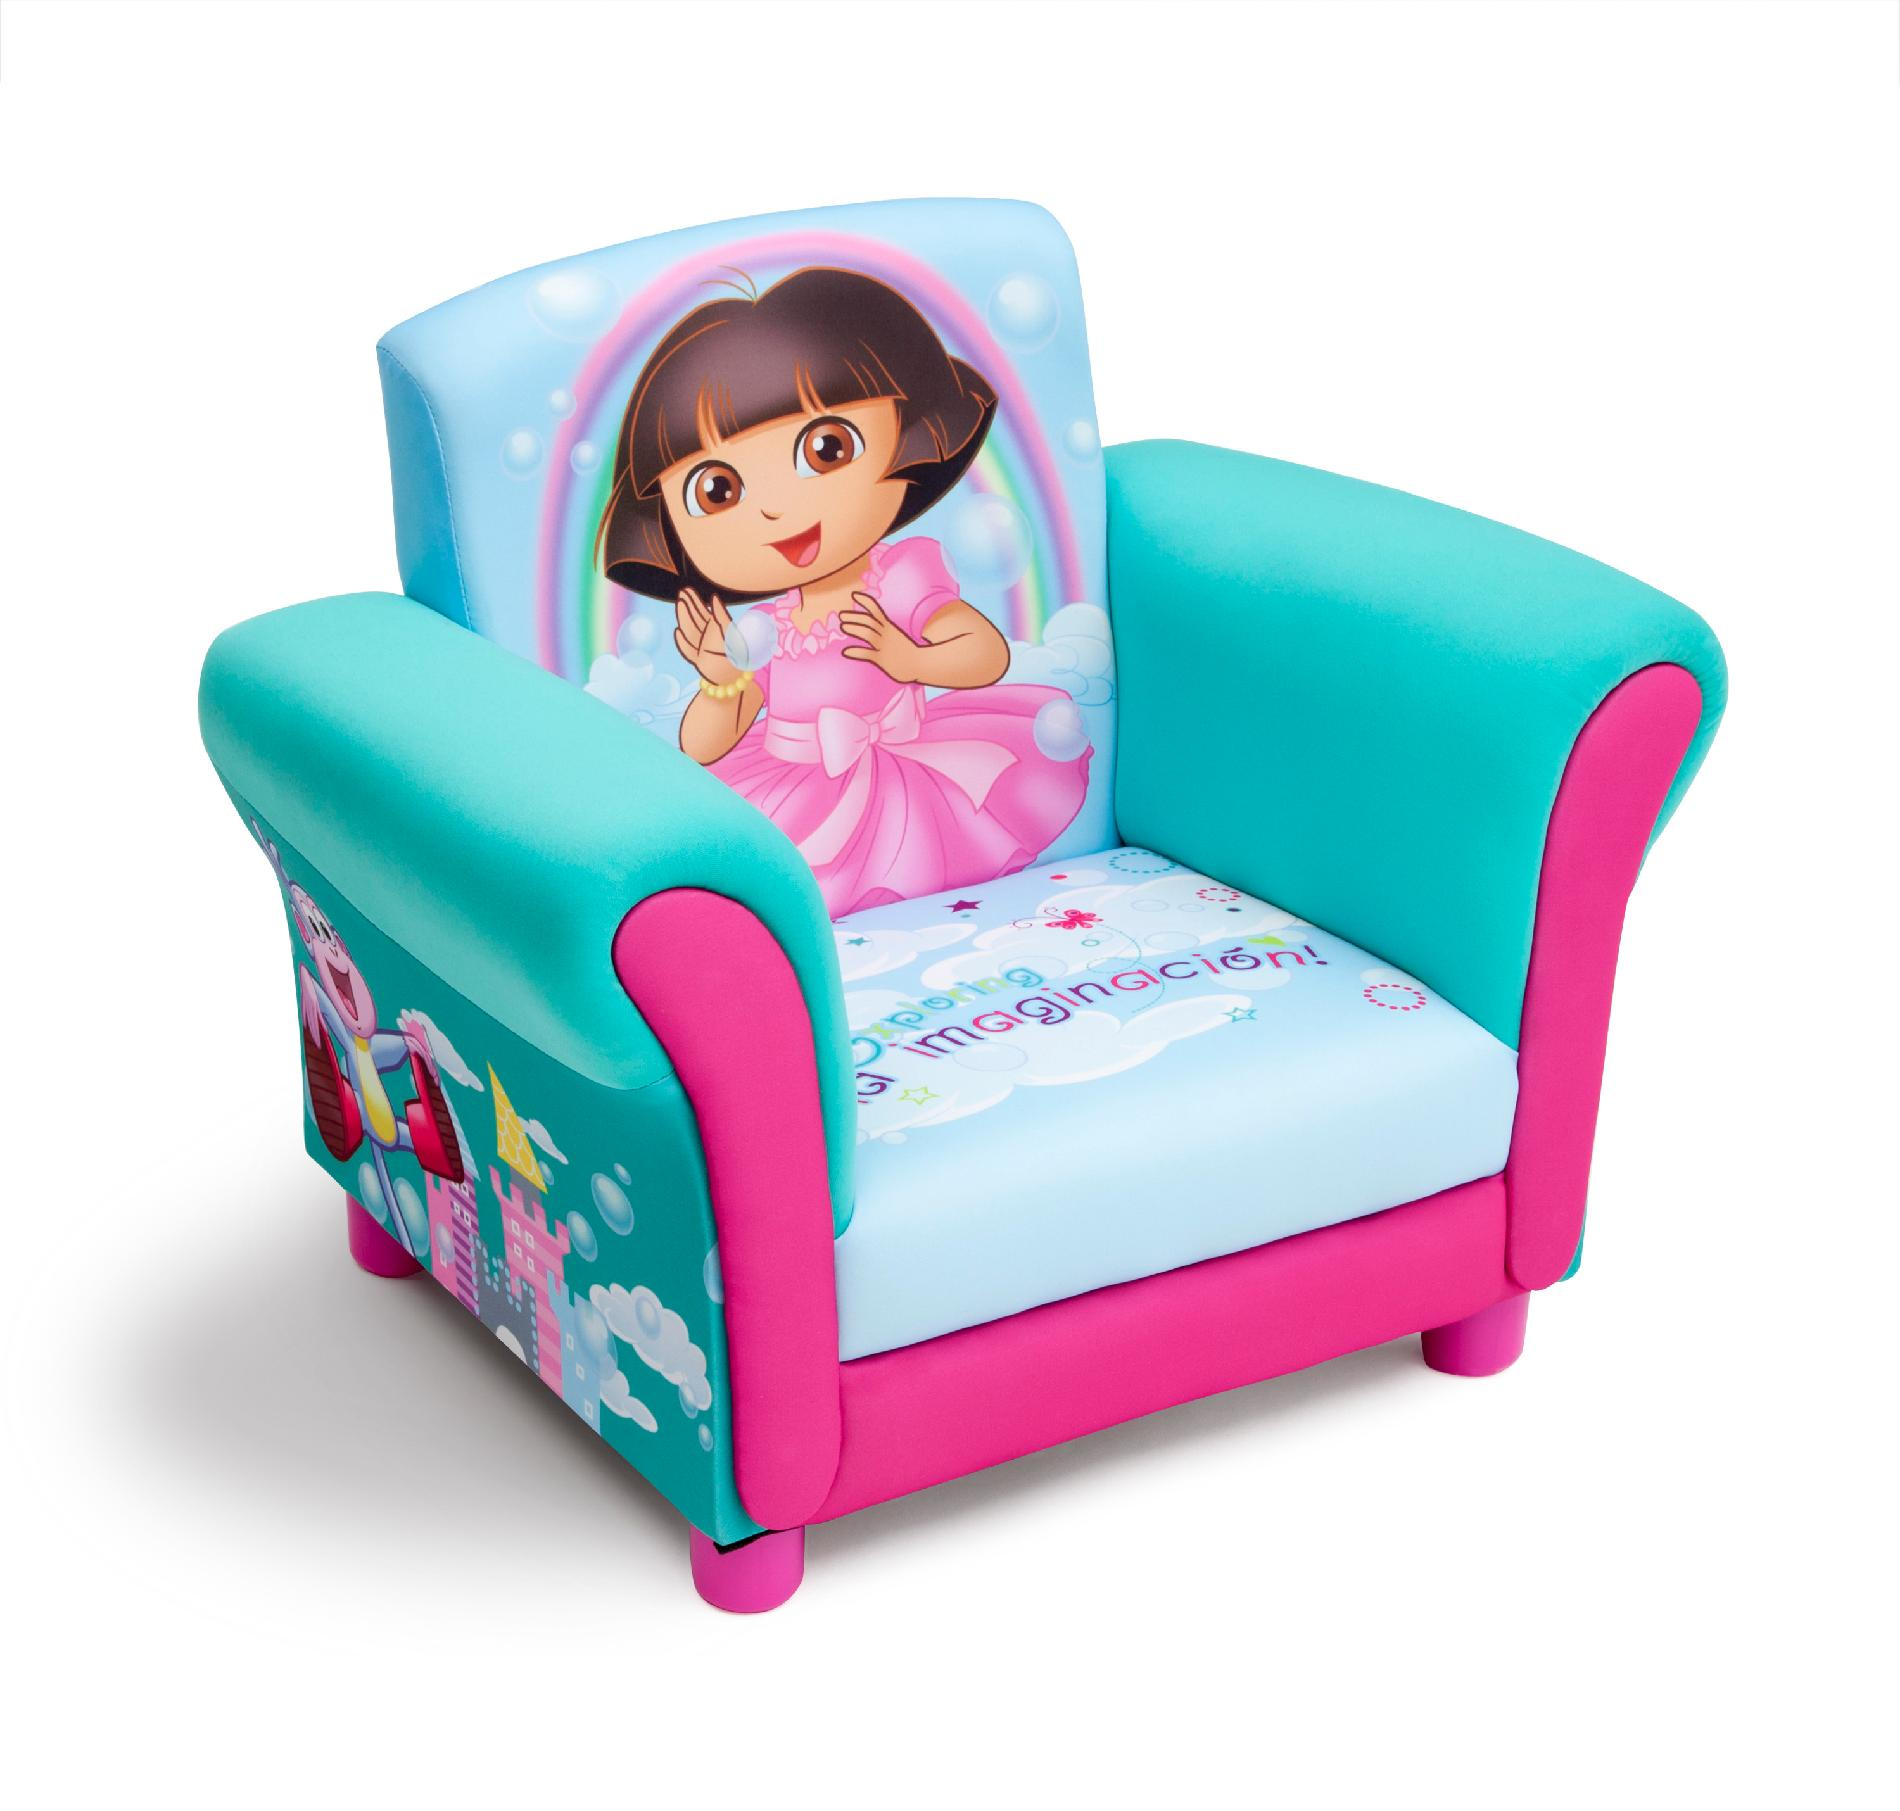 Toddler Couch Delta Upholstered Child 39s Minnie Mouse Rocking Chair Free